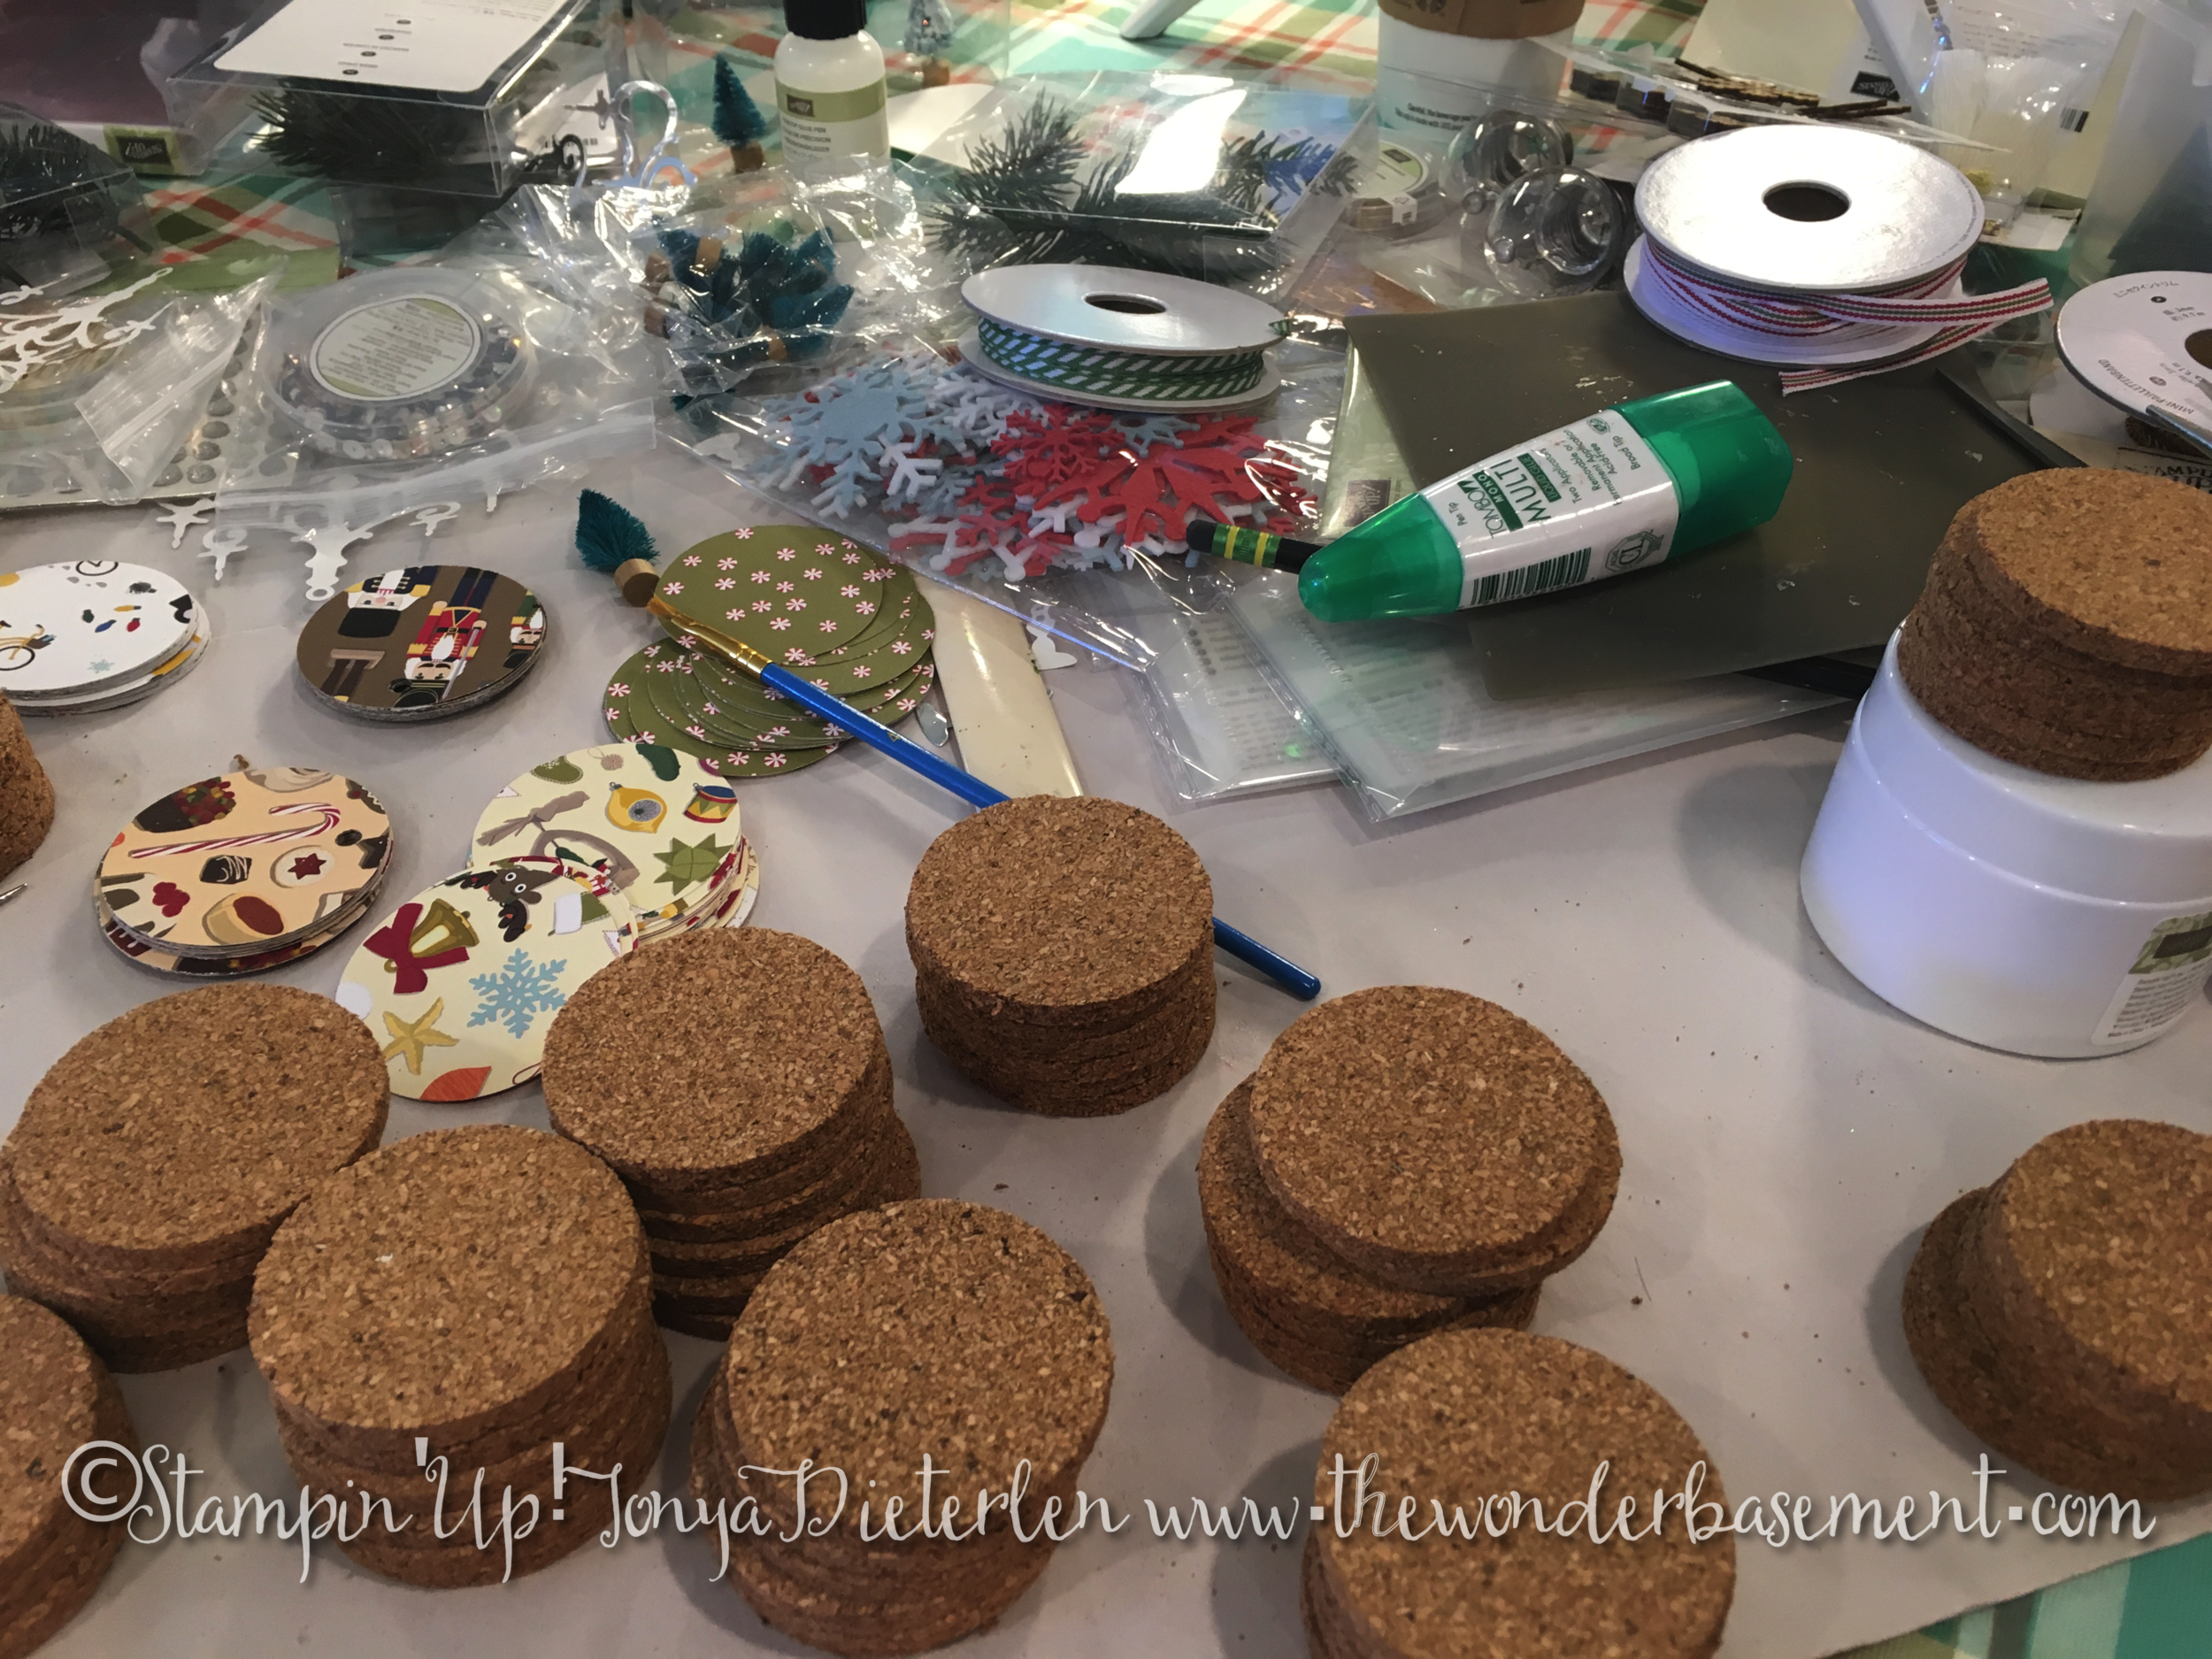 Corks and glue and trees